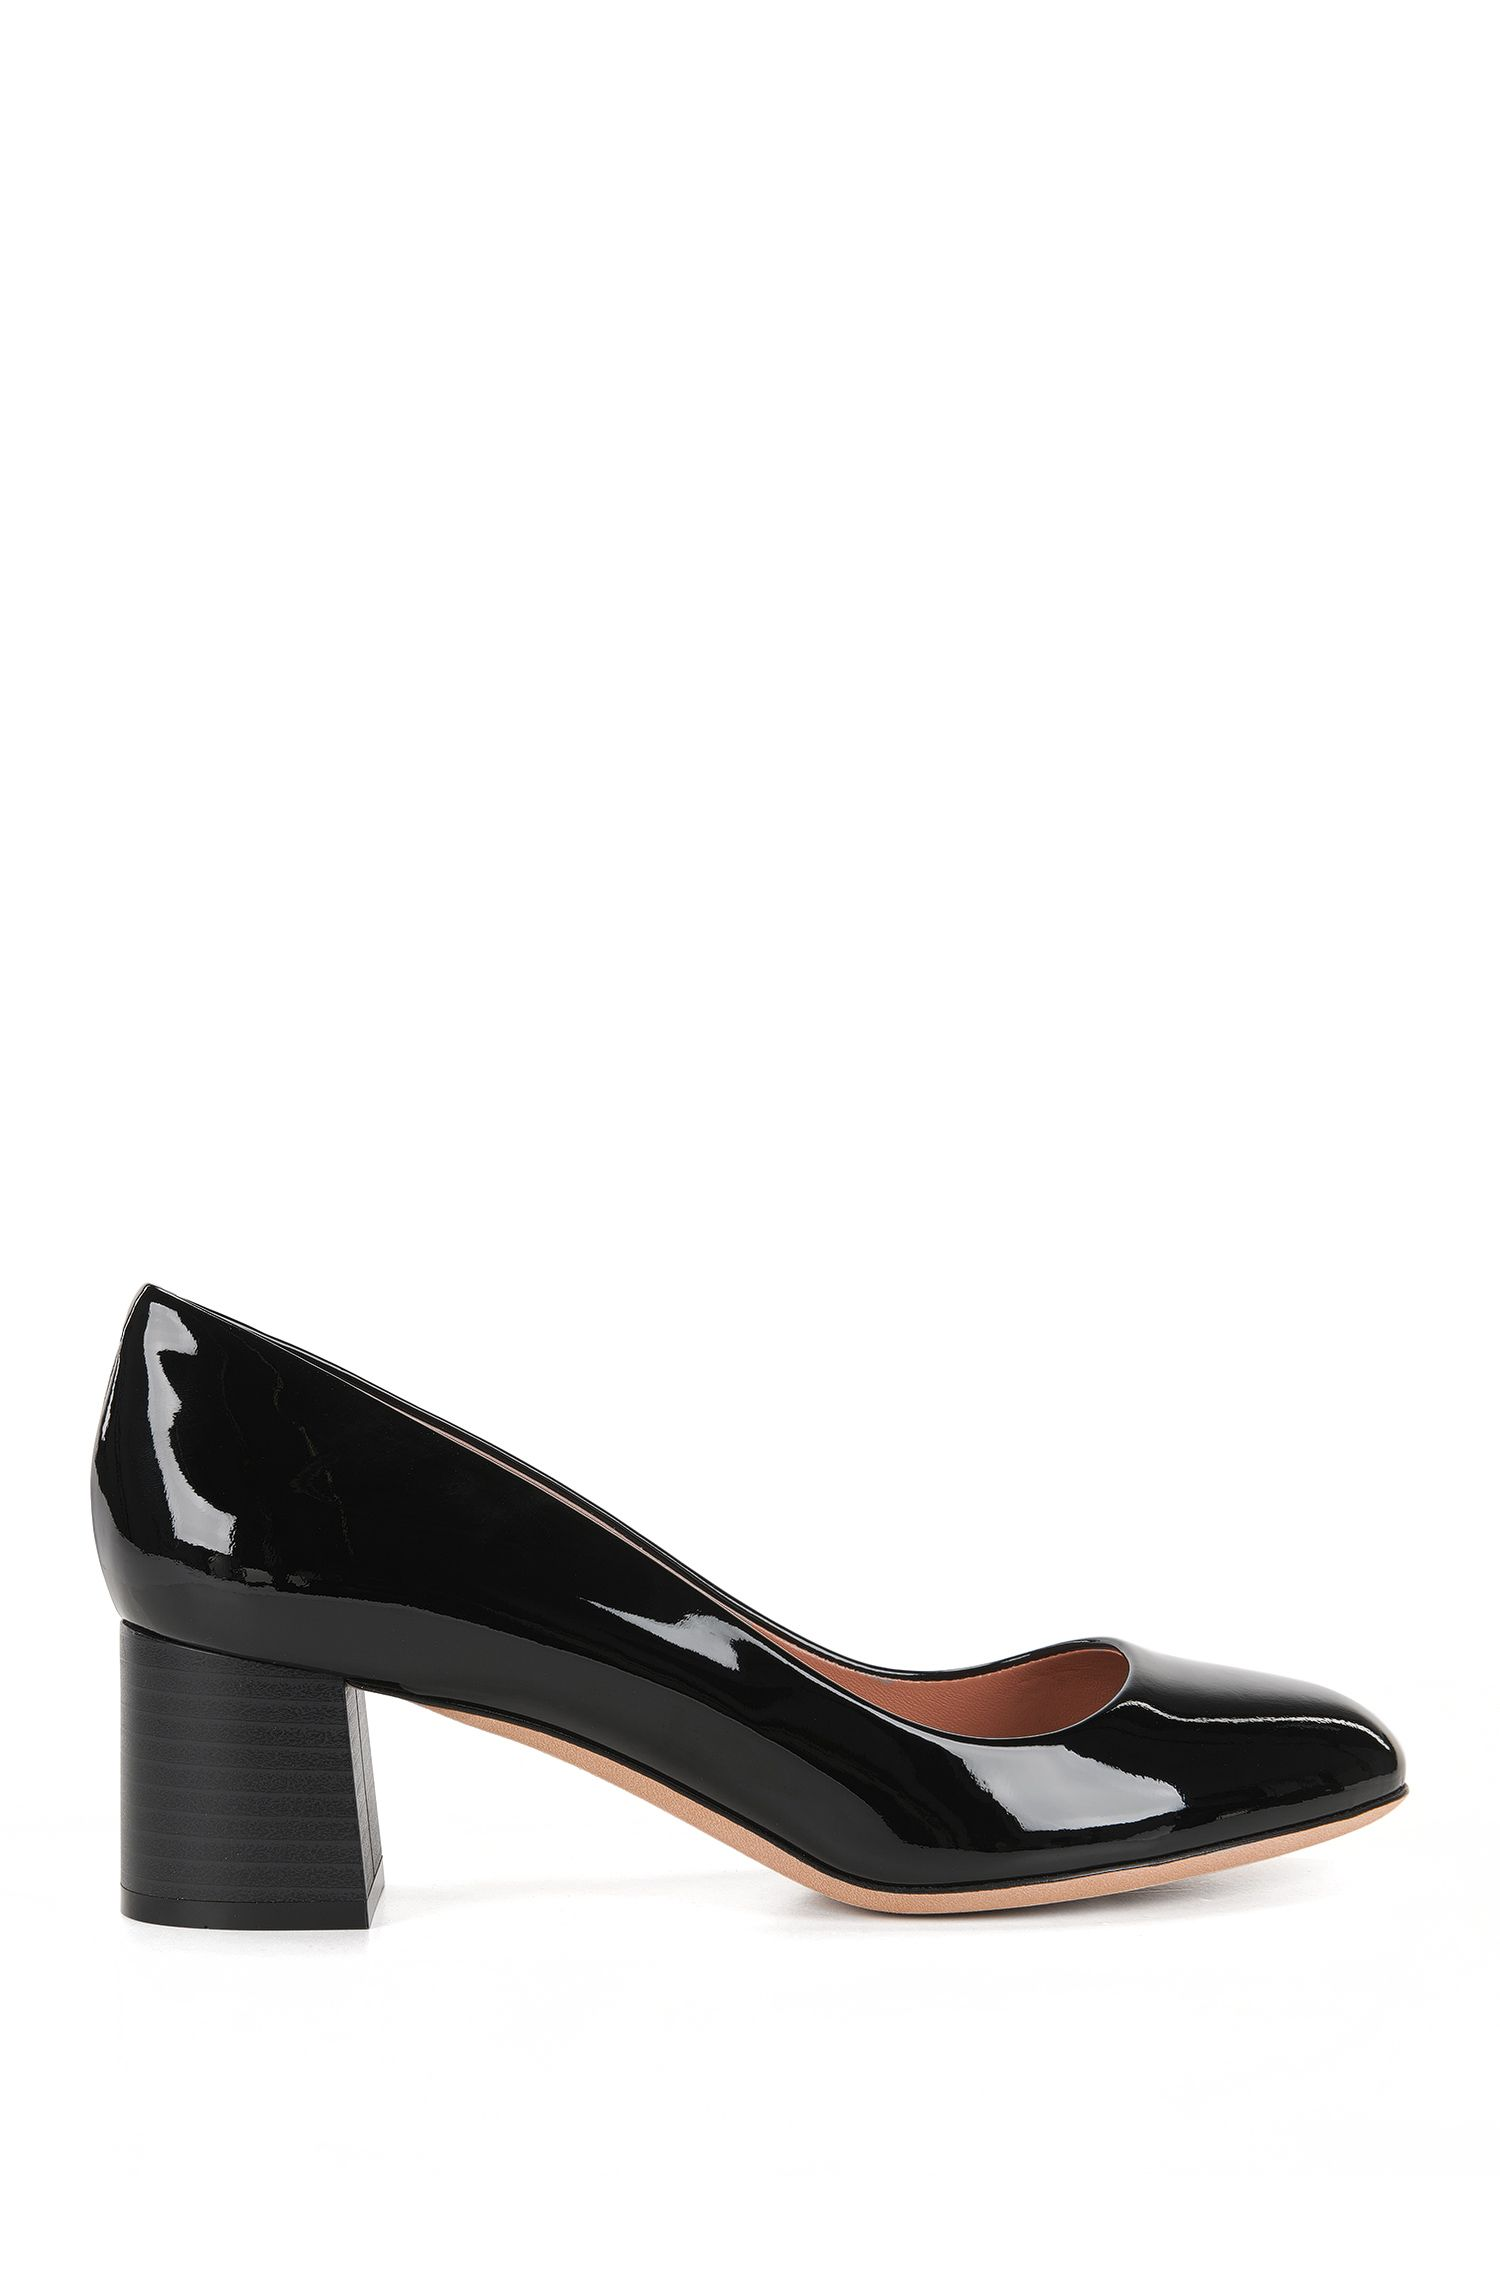 Patent pumps with 50mm heel